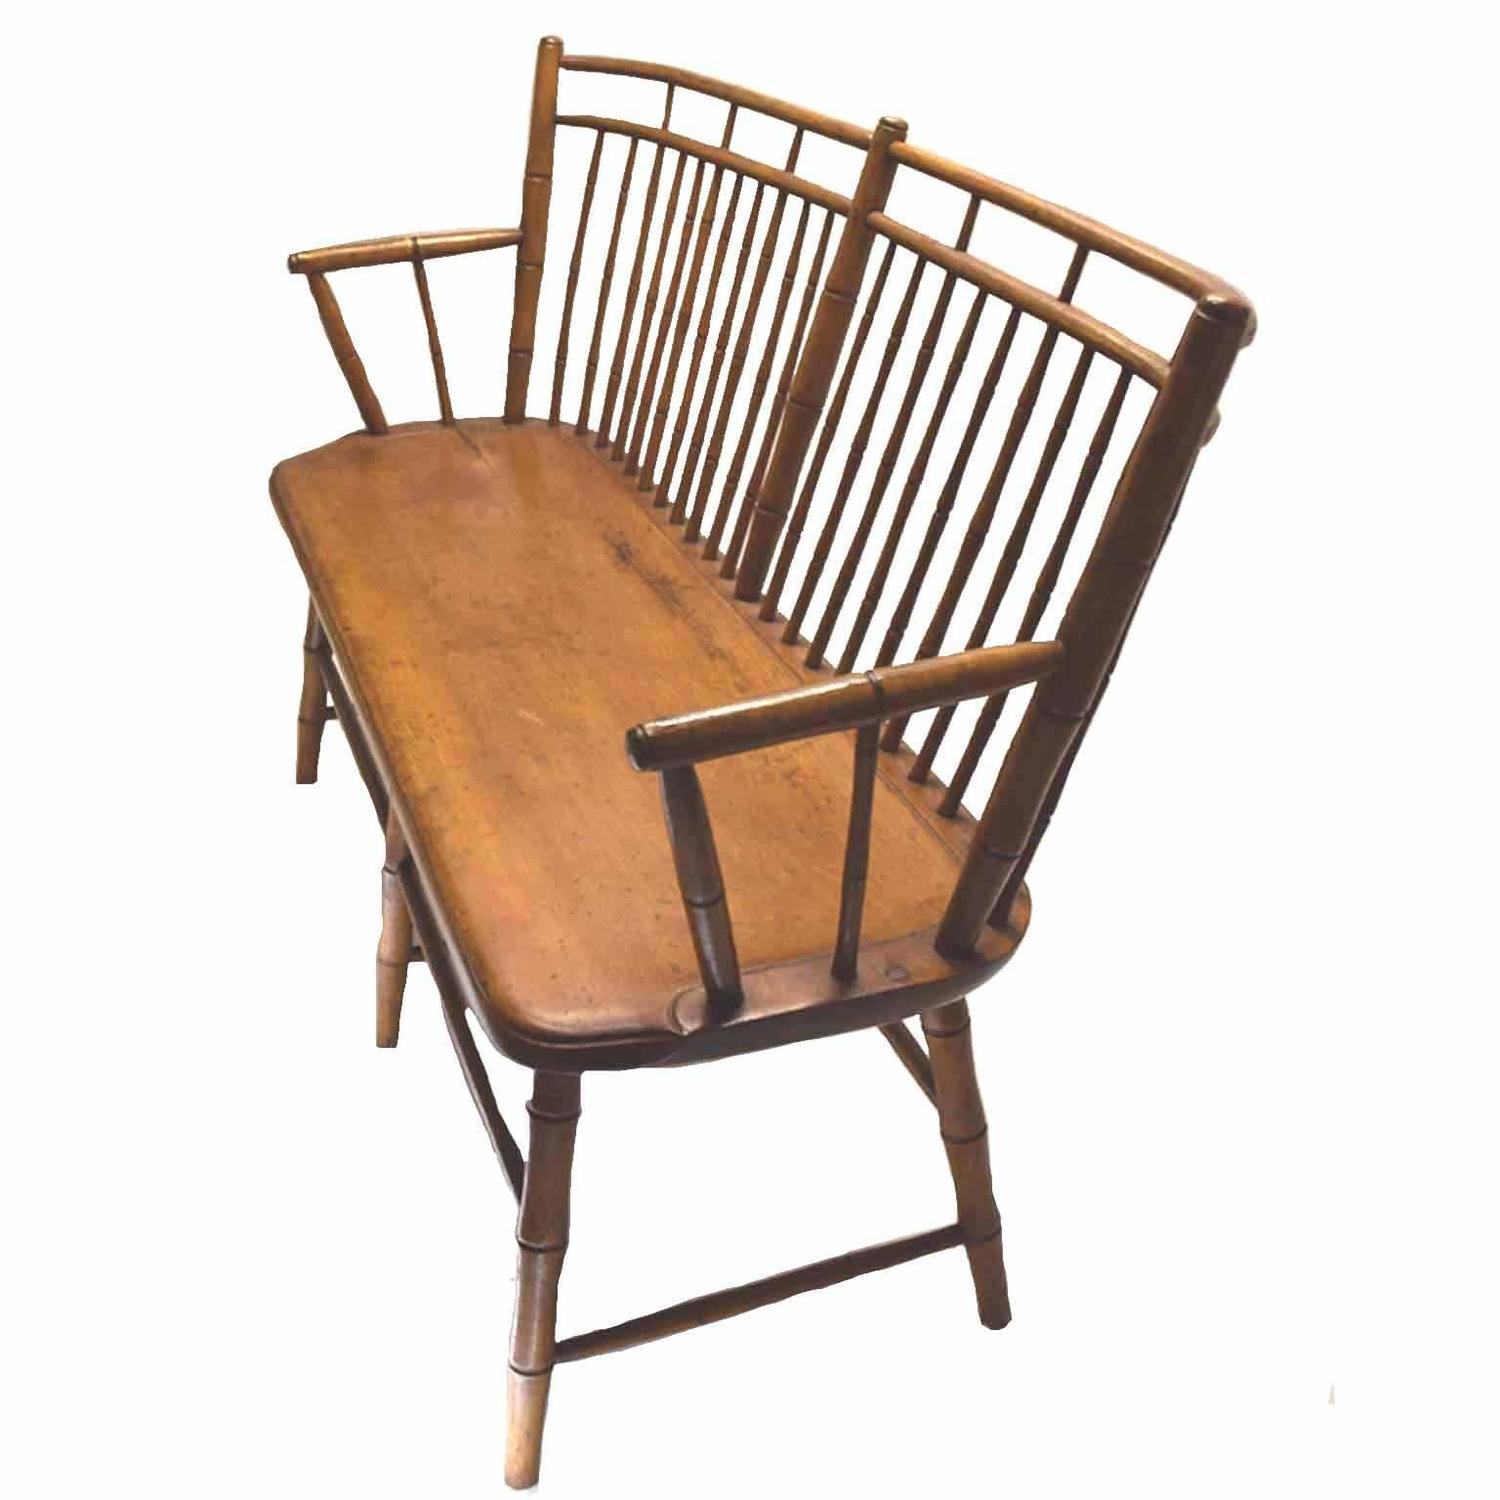 Bamboo furniture for sale in houston tx american hwy for I furniture houston